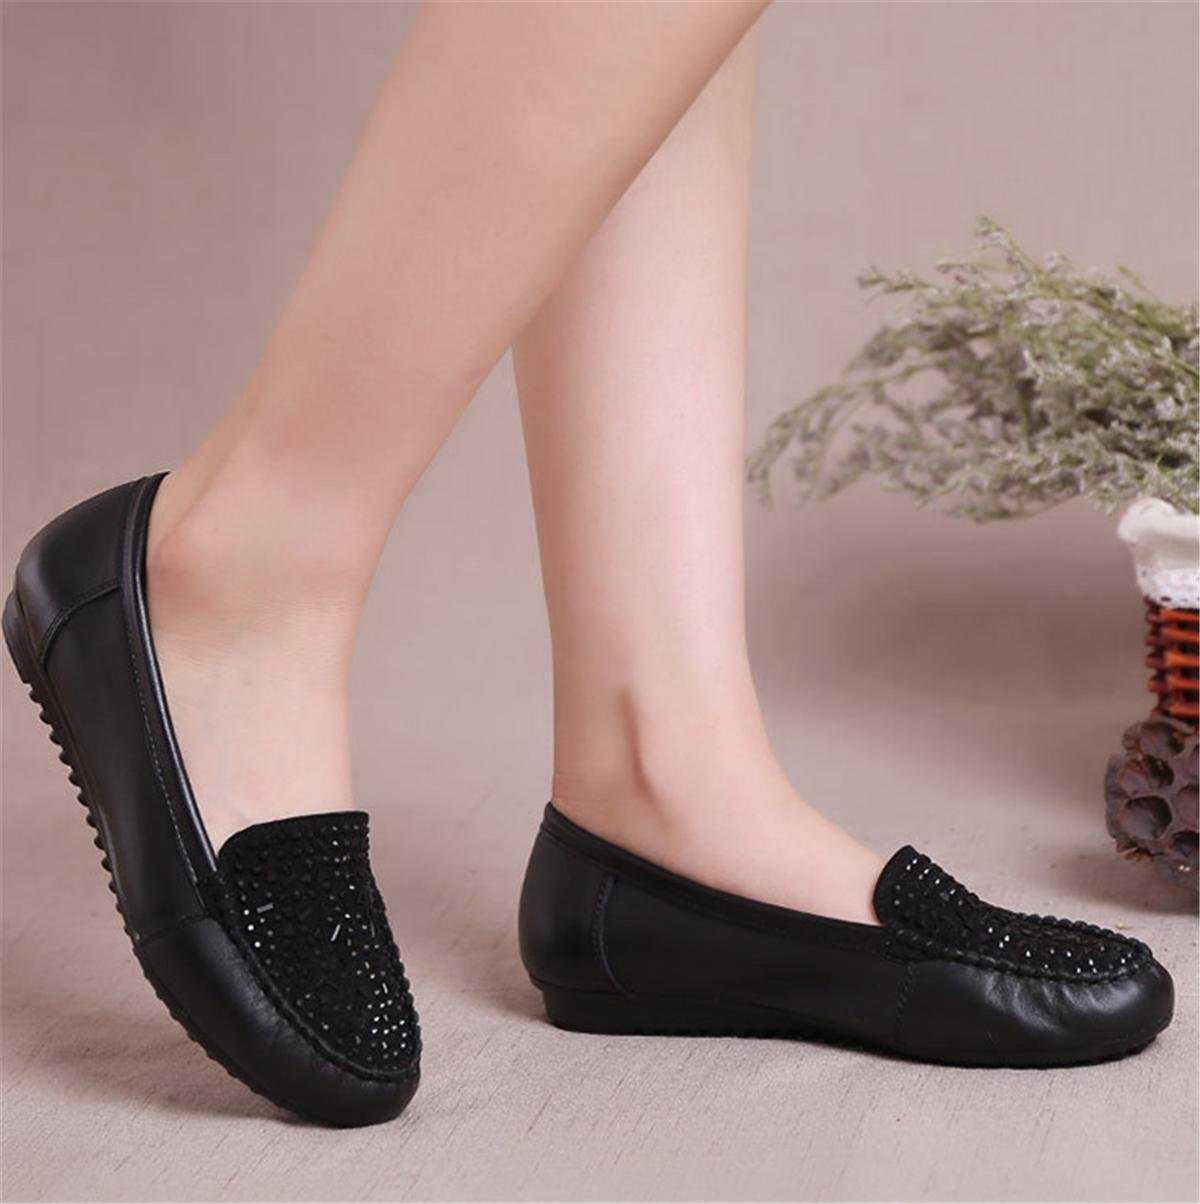 Damen Flats Single Schuhe Loafer Neue Freizeit Komfort Soft Echt Leder Pumps Anti-Rutsch Soft Komfort Bottom Schwarz Herbst Frühling Party Work 53e7cf